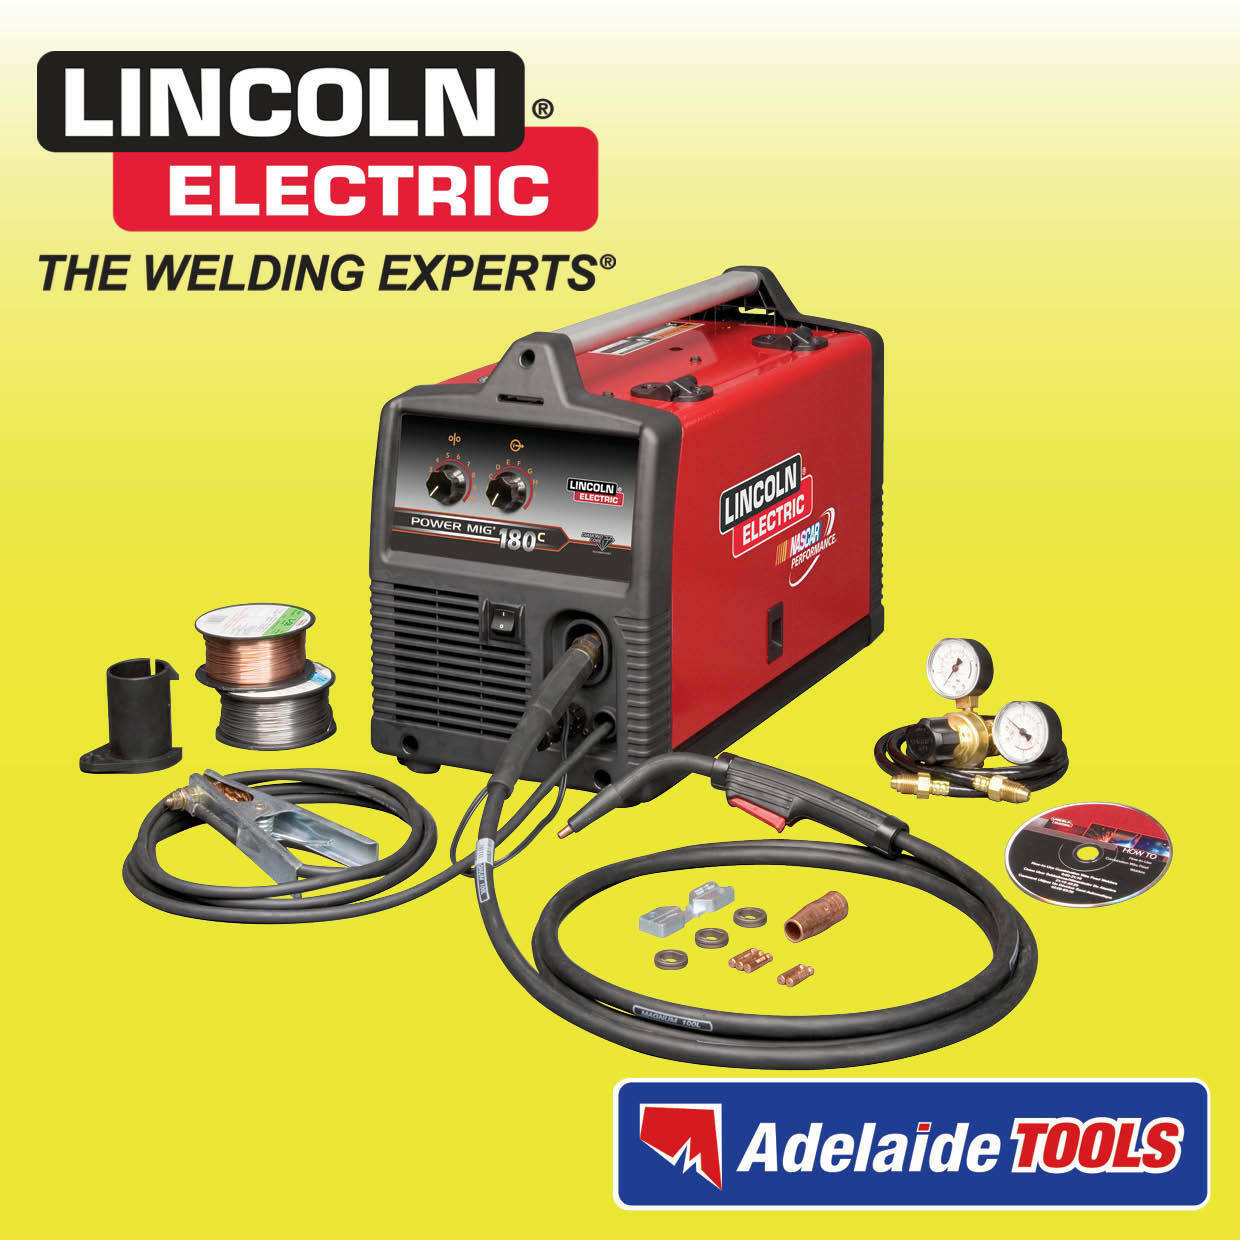 Lincoln Electric Power Mig 180c 180amp Welding Machine Ebay Welder And Generator Parts Norton Secured Powered By Verisign